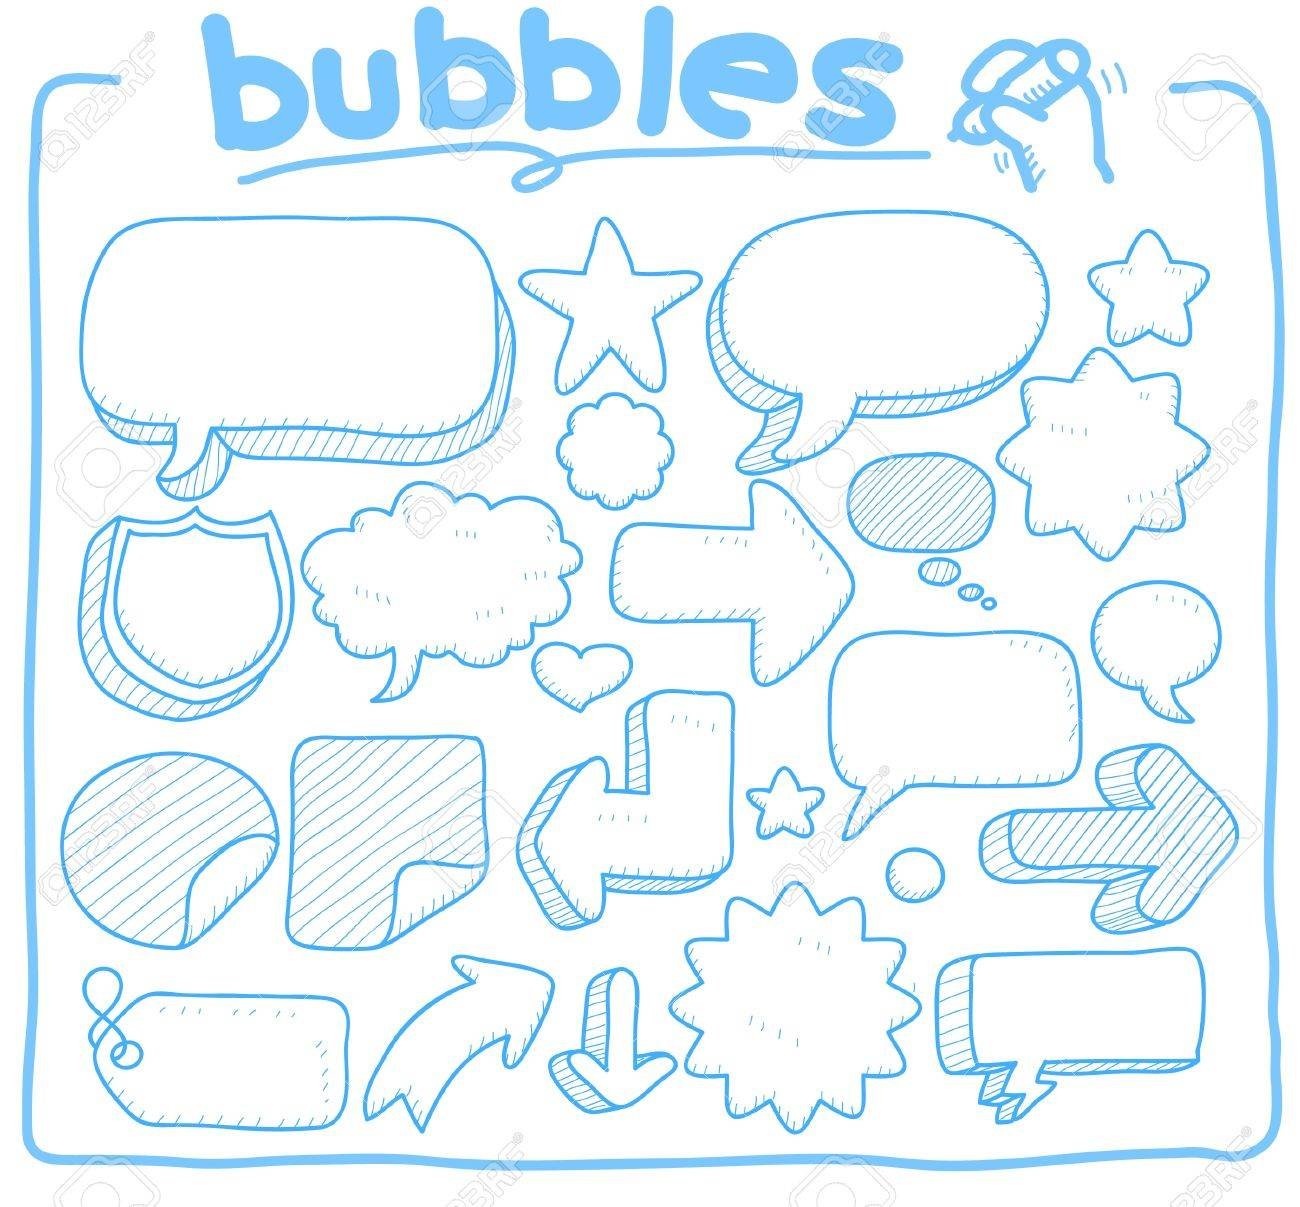 hand drawn,doodle bubble,coommunication shape collection Stock Vector - 11181155